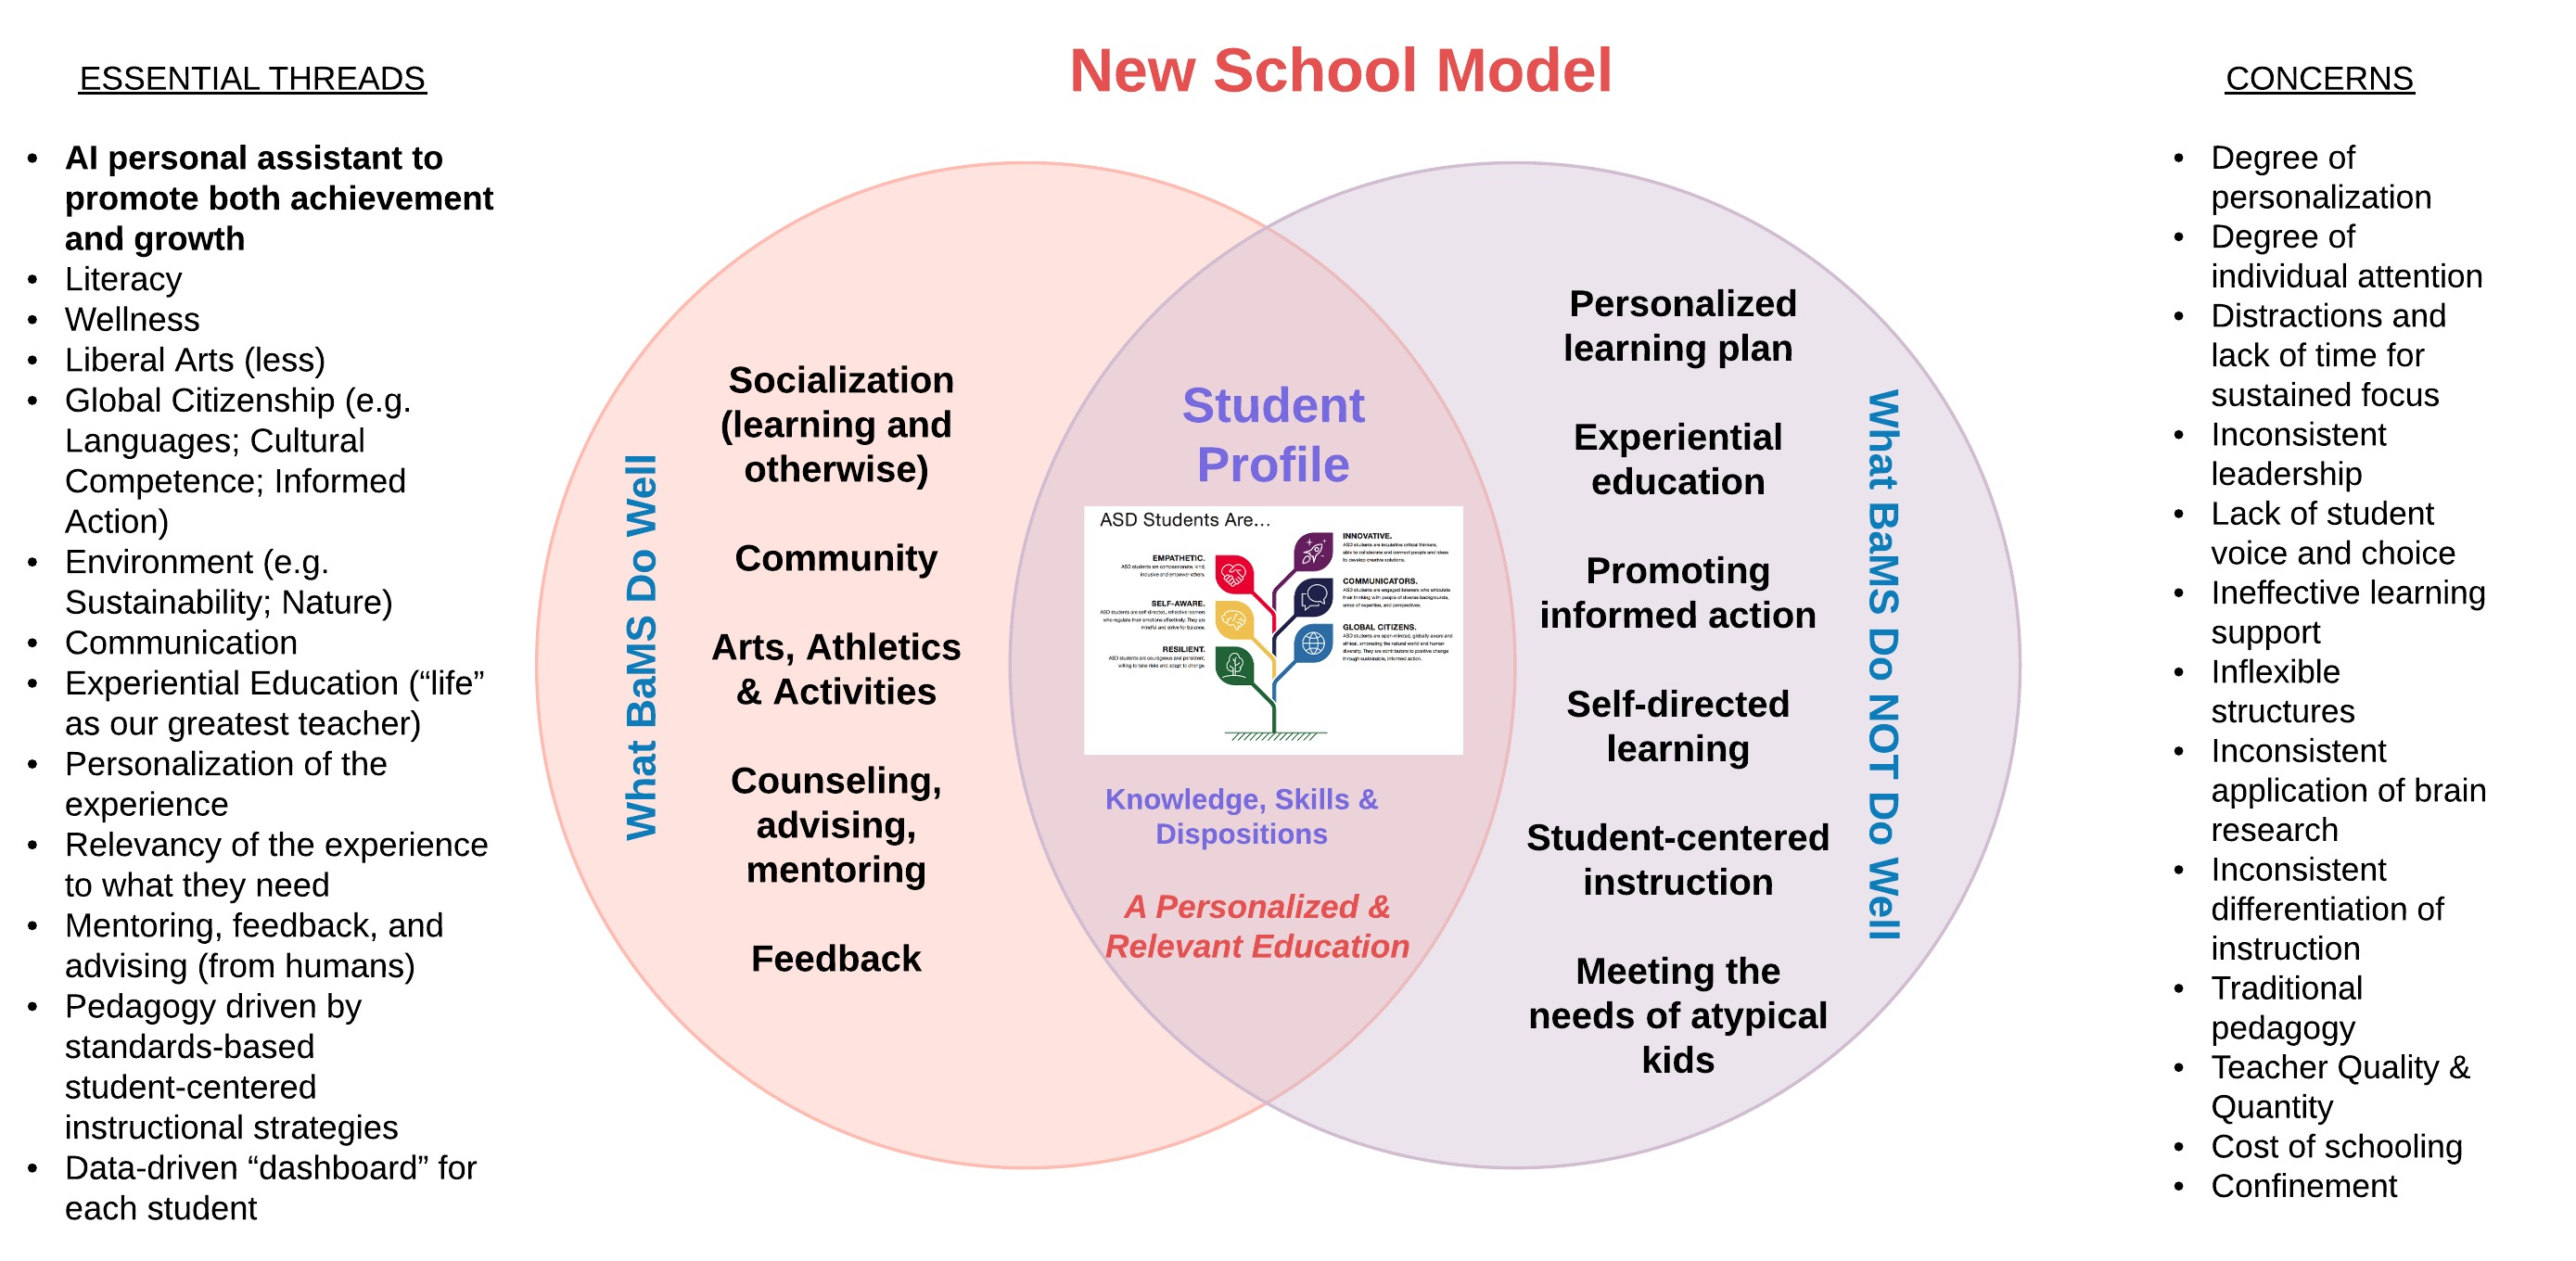 New School Model - Plain.jpeg